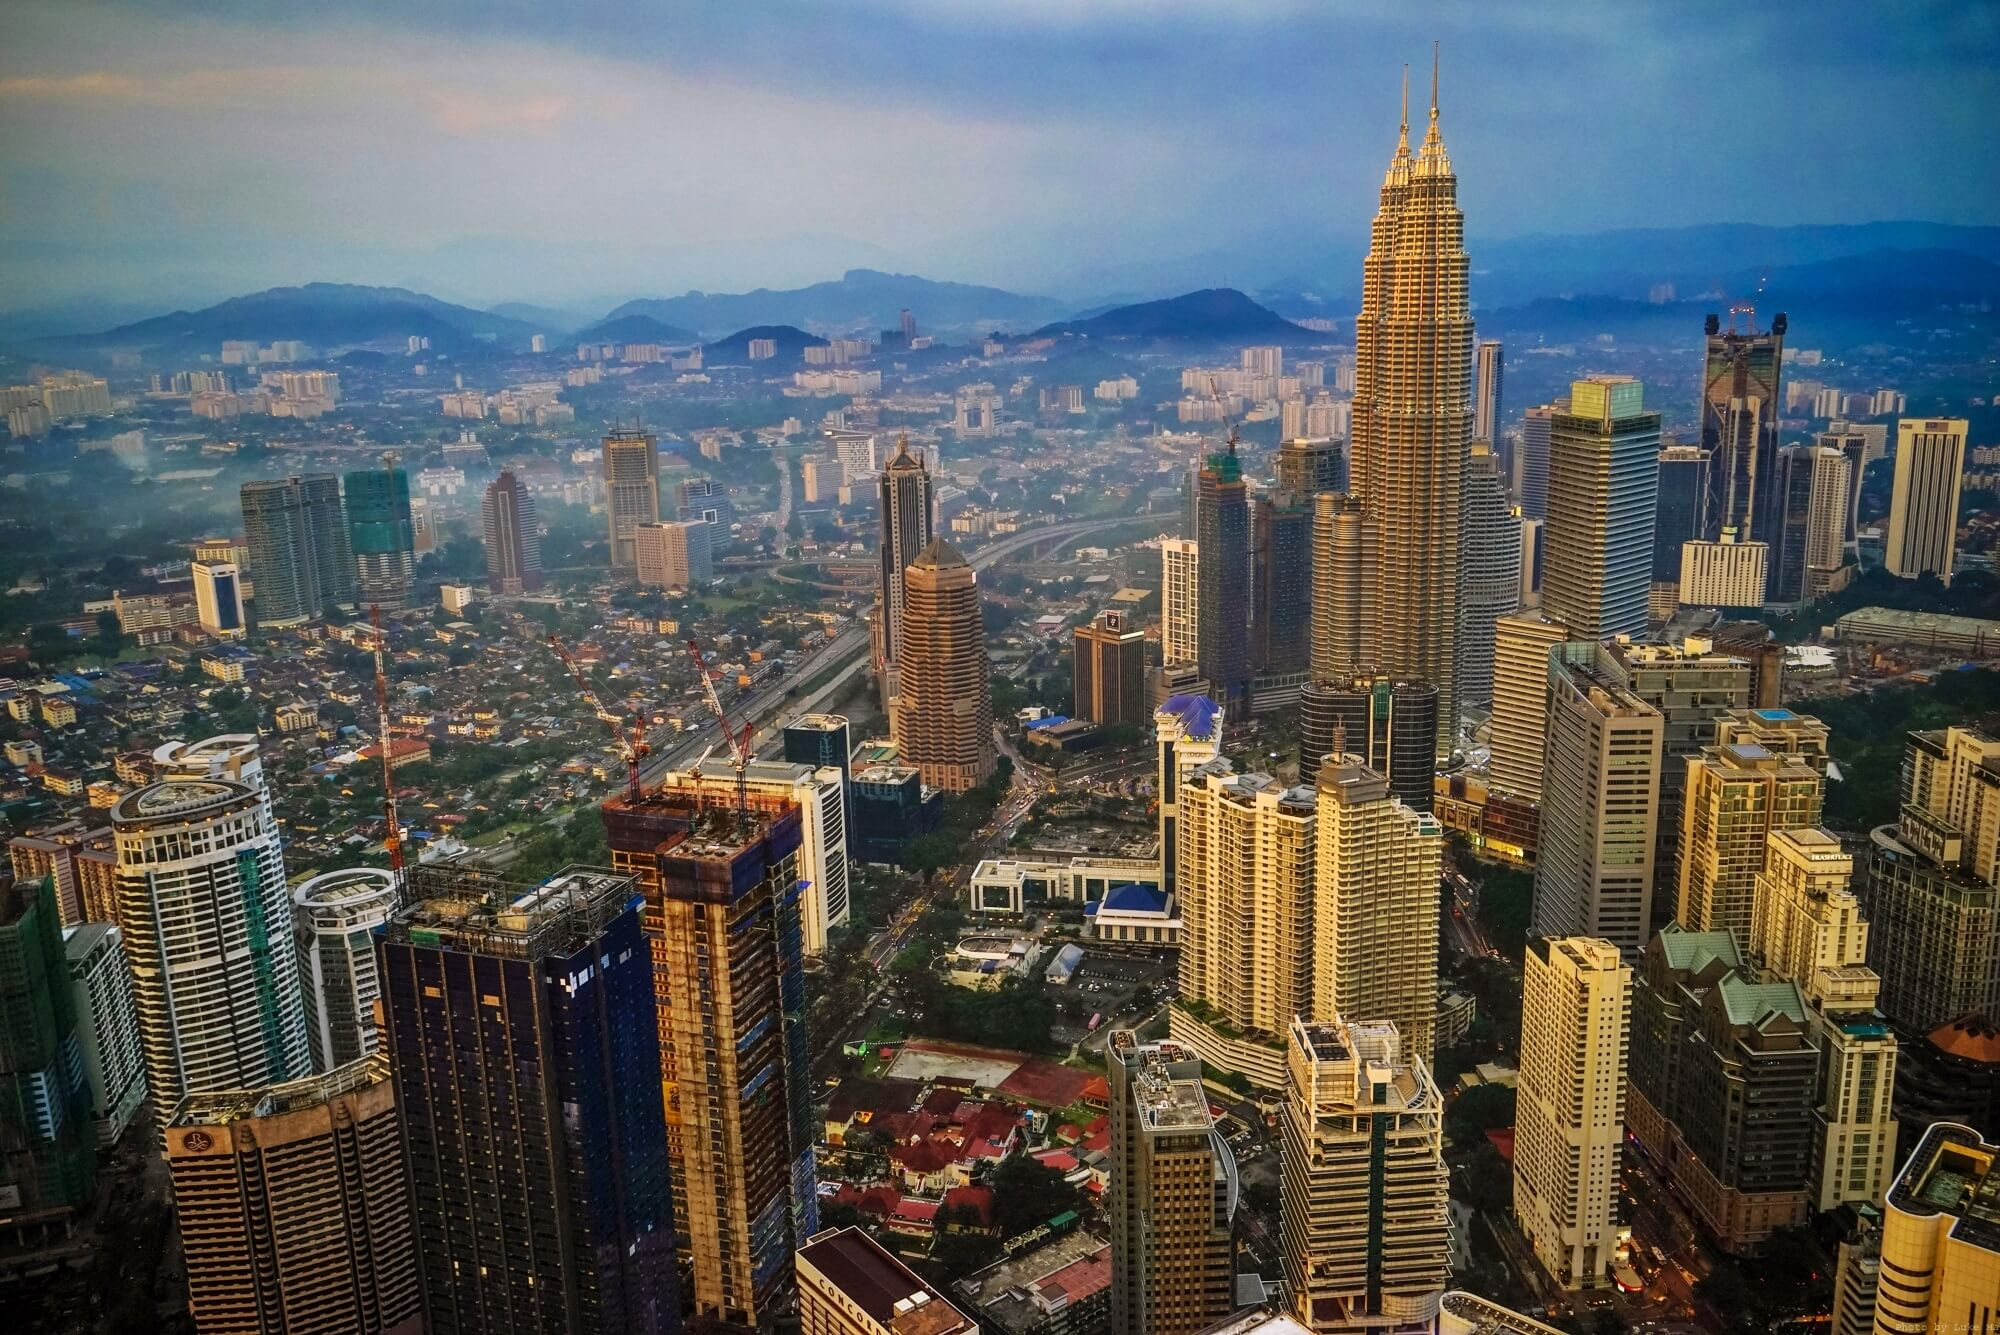 The Future of Cities: Megatall and Supertall Buildings